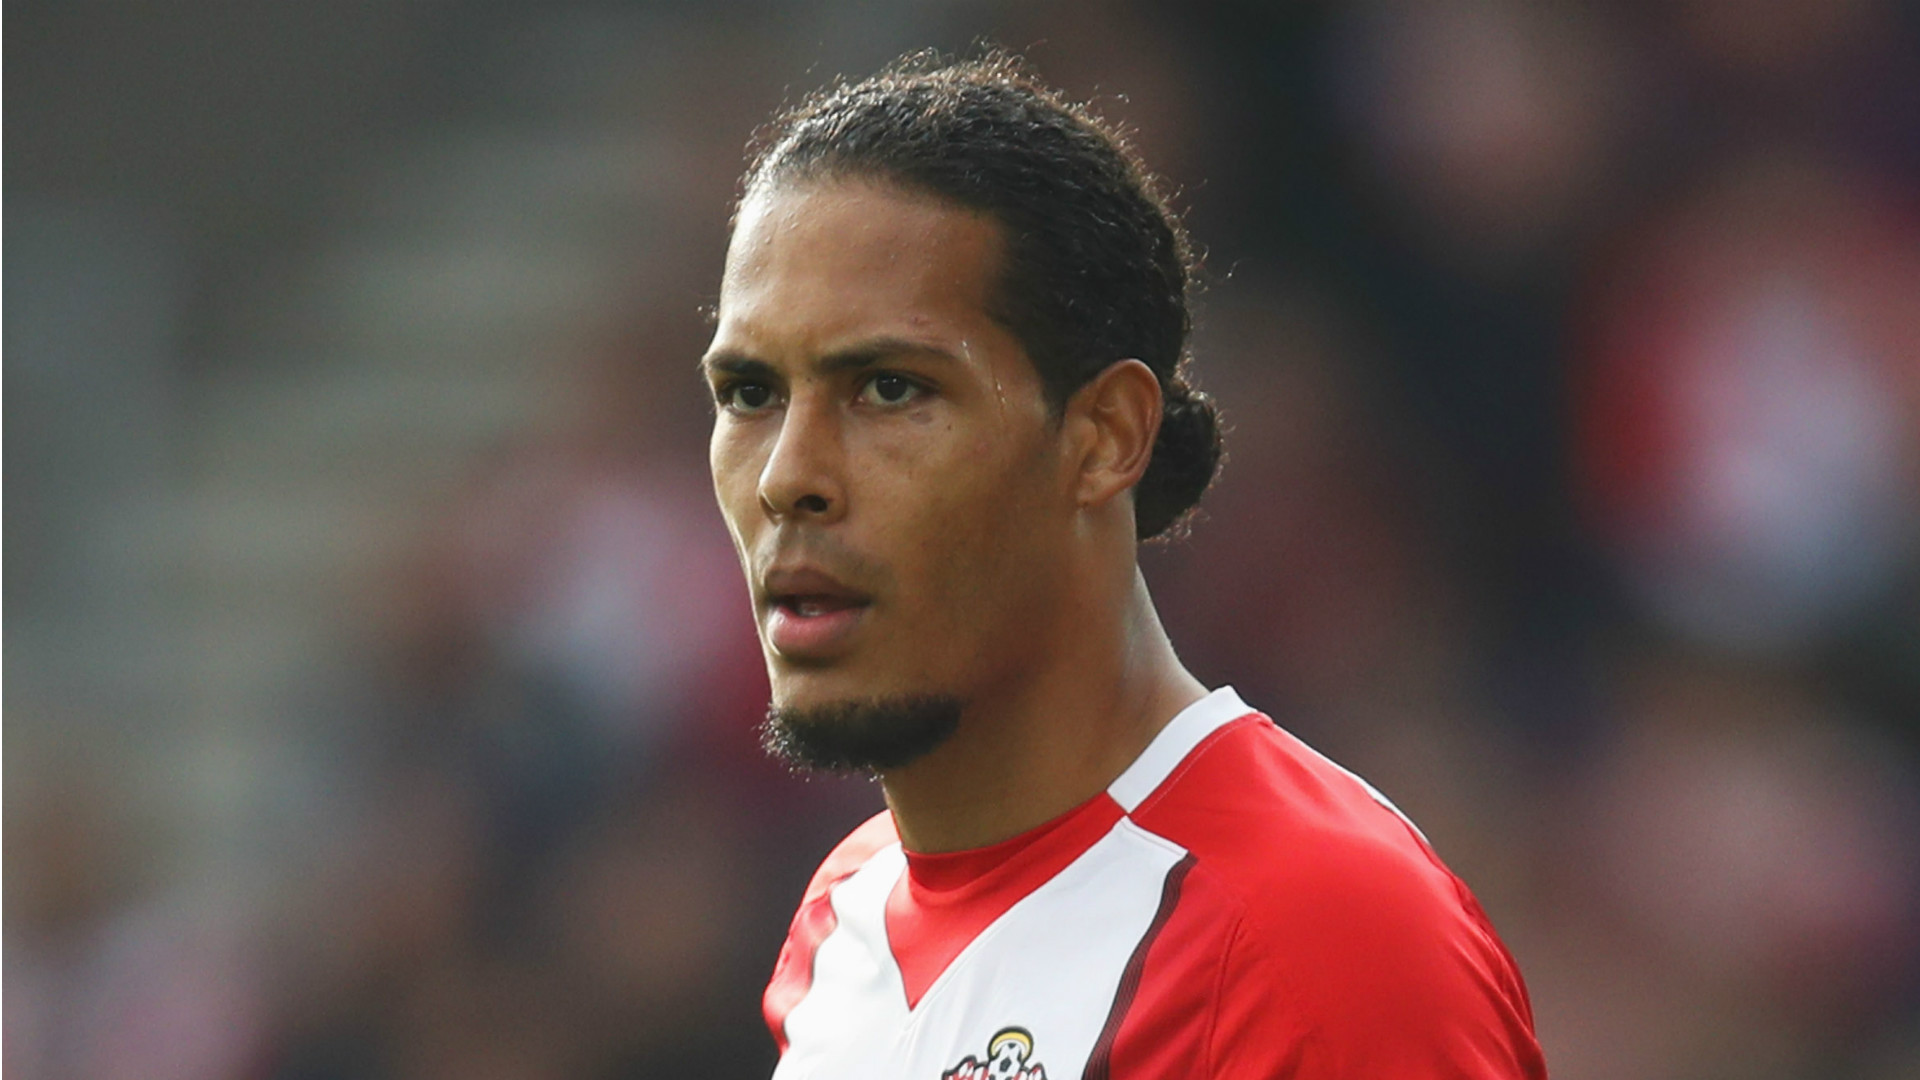 Liverpool target Van Dijk: I'm happy at Southampton, let's see what happens